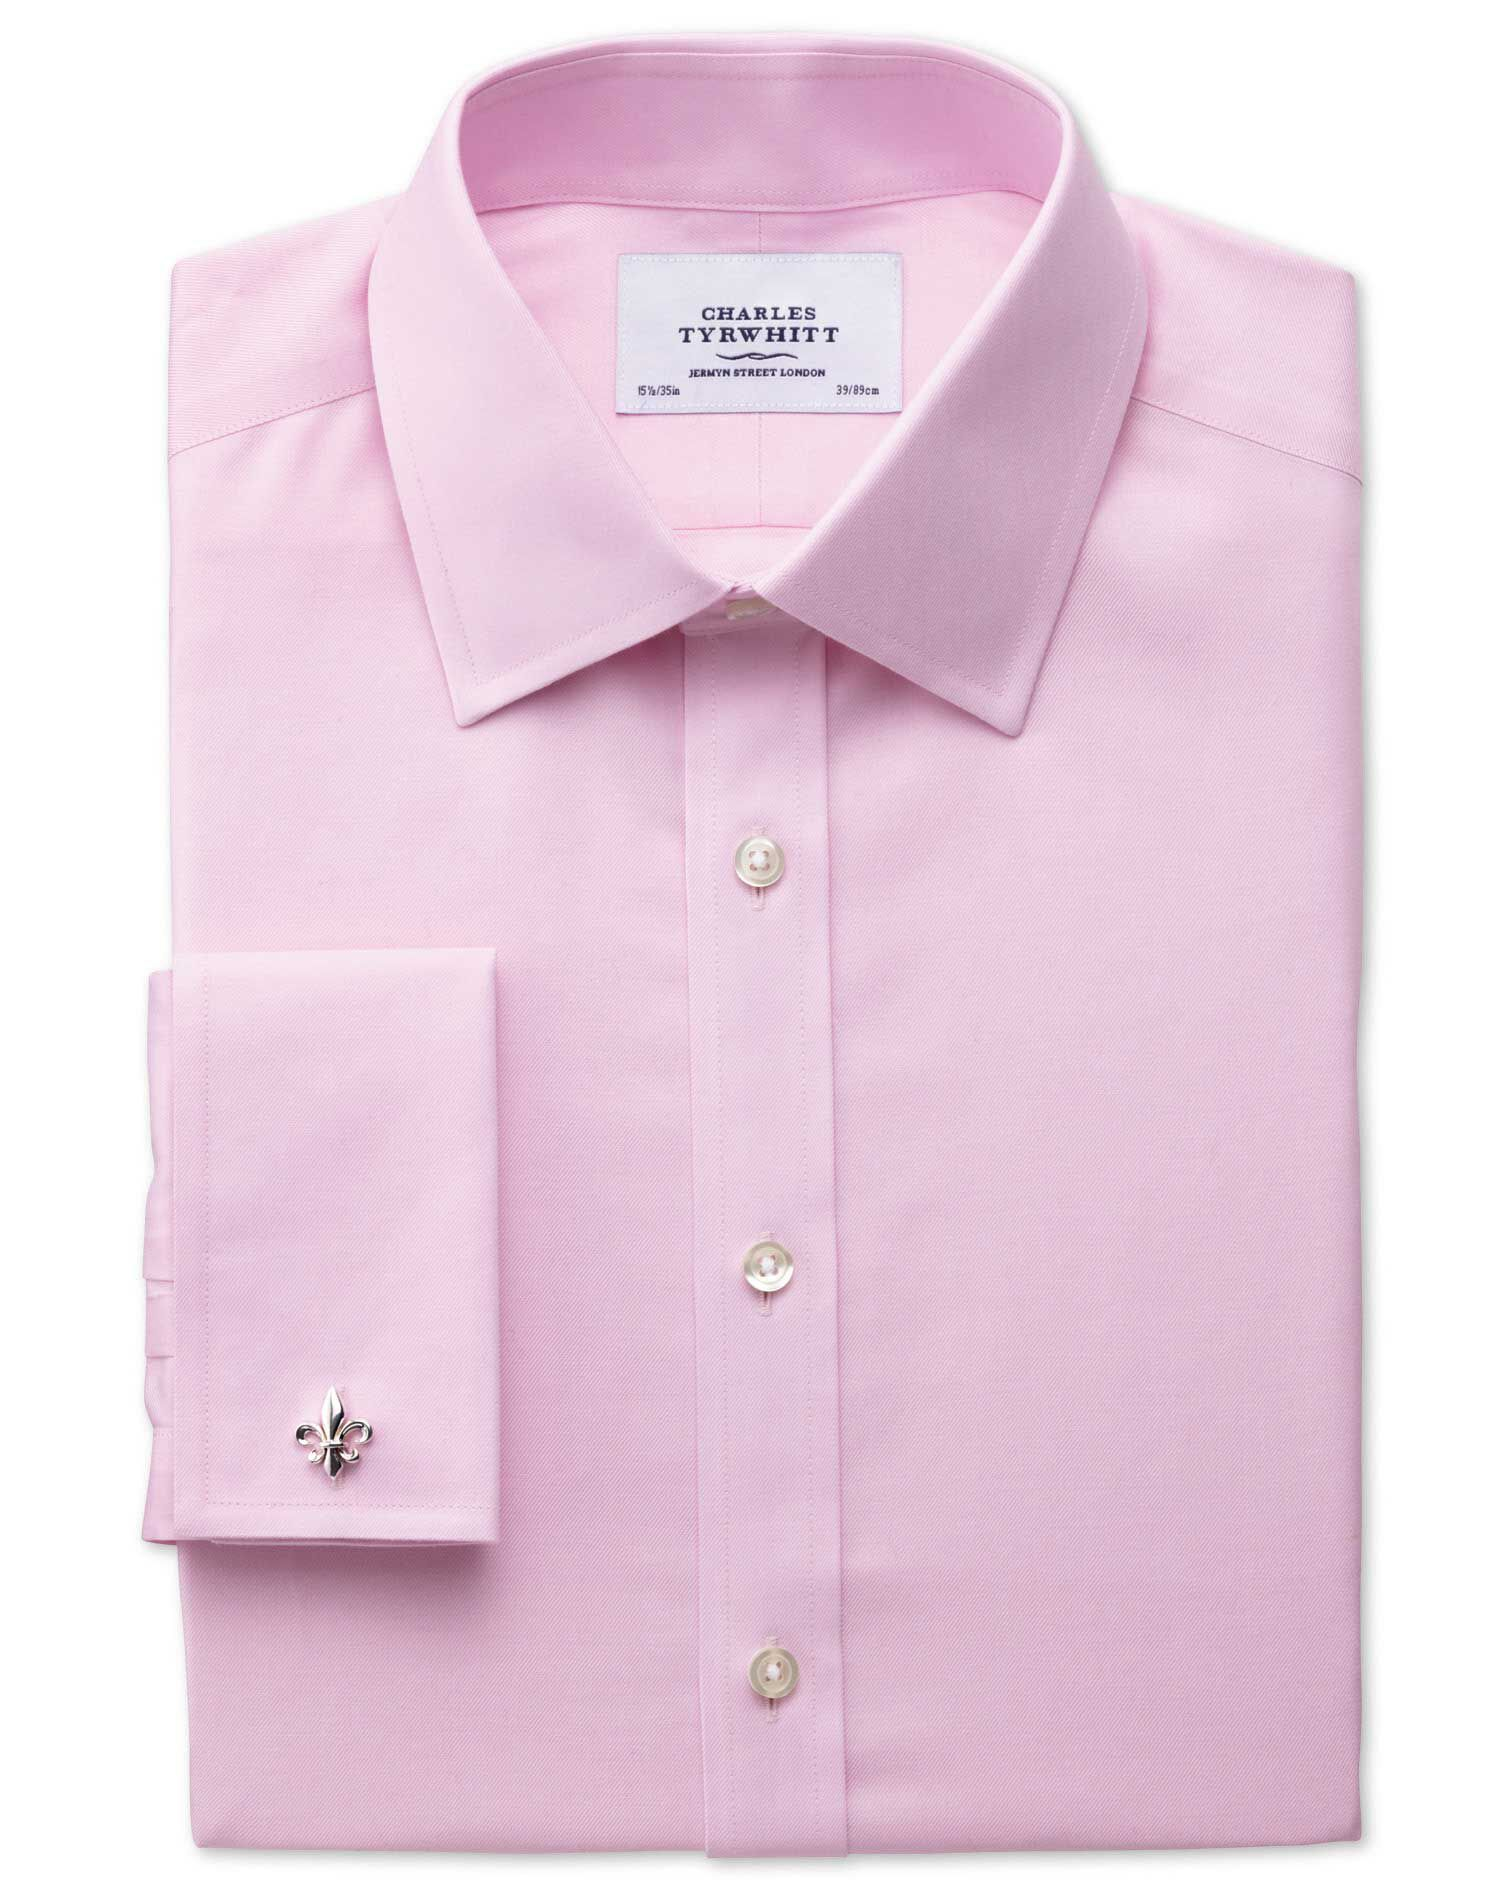 Extra Slim Fit Non-Iron Twill Pink Cotton Formal Shirt Double Cuff Size 16.5/33 by Charles Tyrwhitt